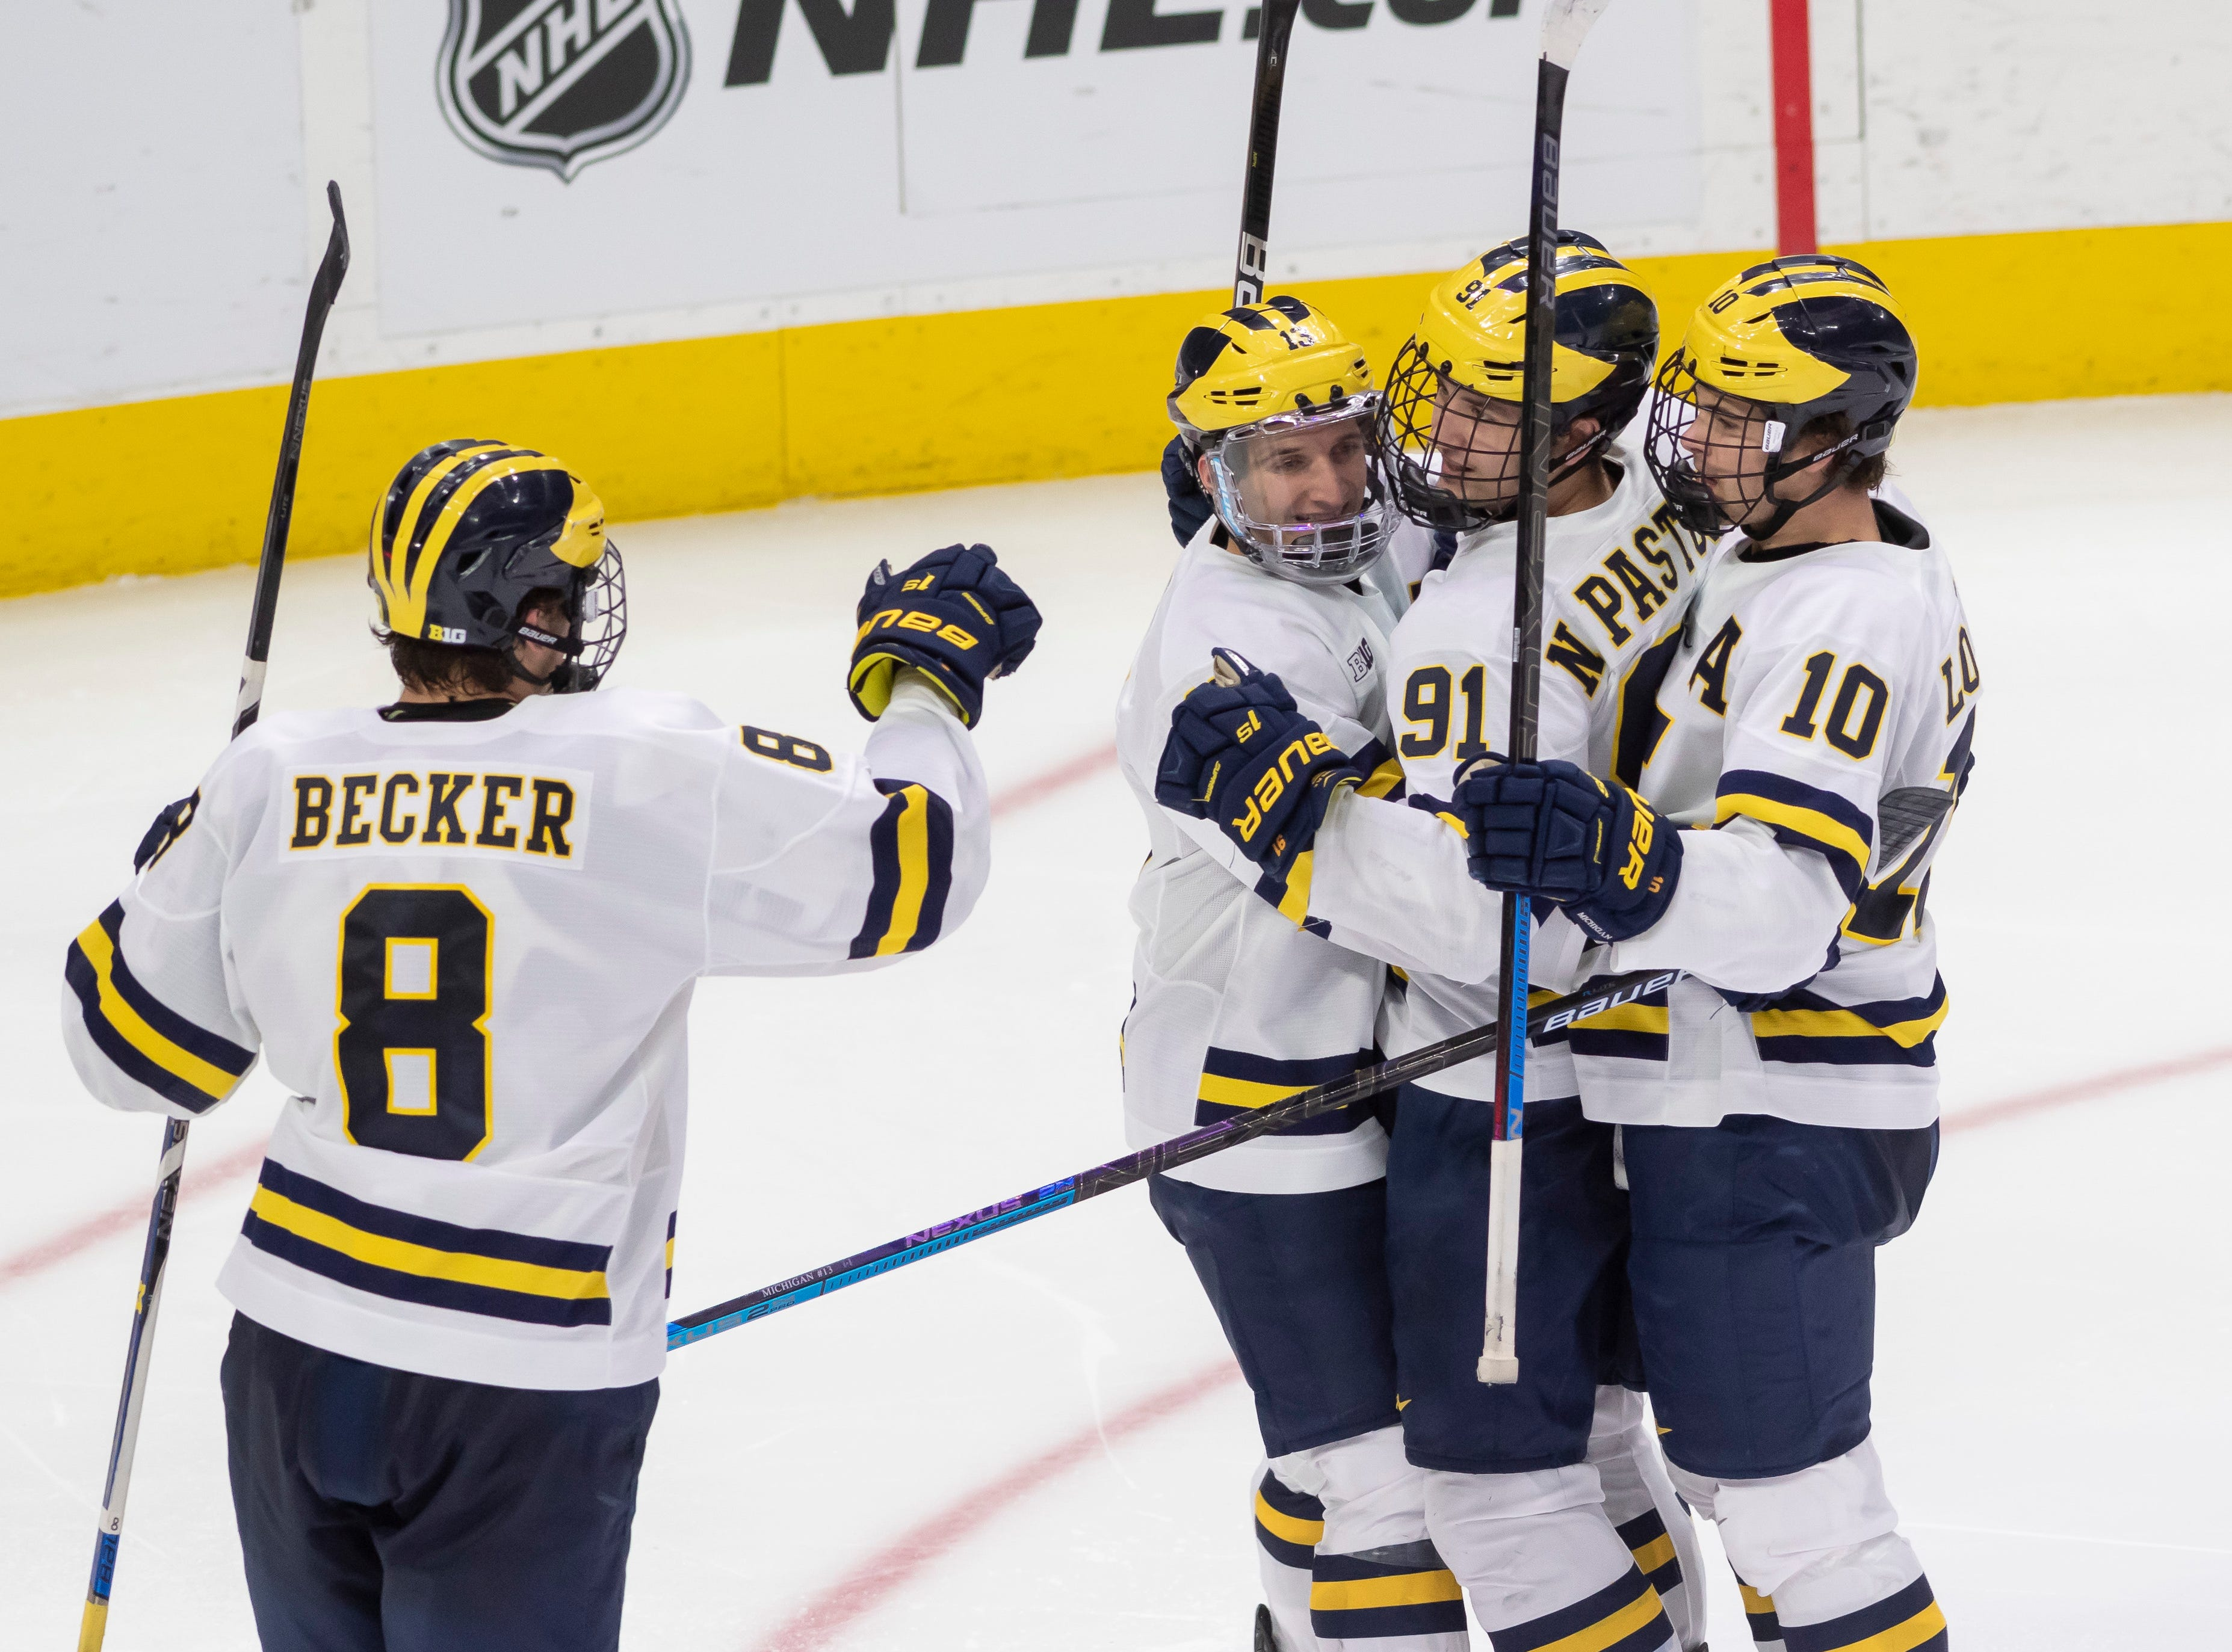 (From left) Michigan forward Jack Becker, forward Jake Slaker, forward Nick Pastujov, and forward Will Lockwood celebrate the tying goal by Pastujov in the third period.   The game ended in a tie.